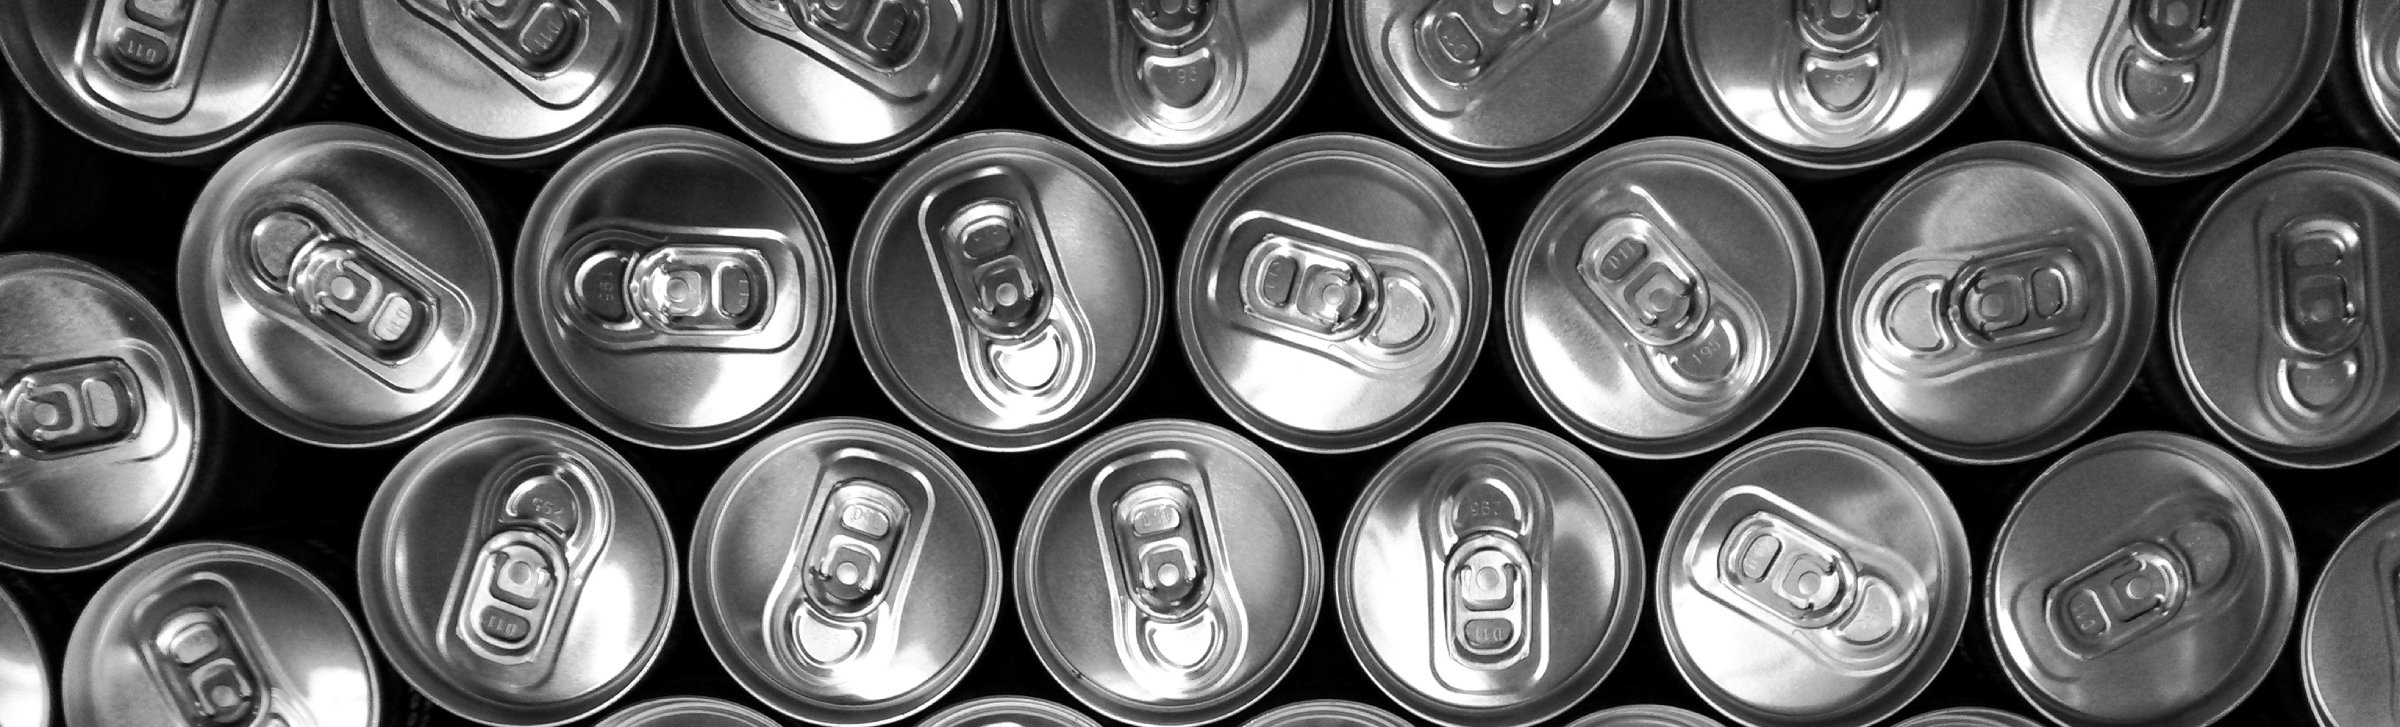 black-and-white-cans-doses-19954